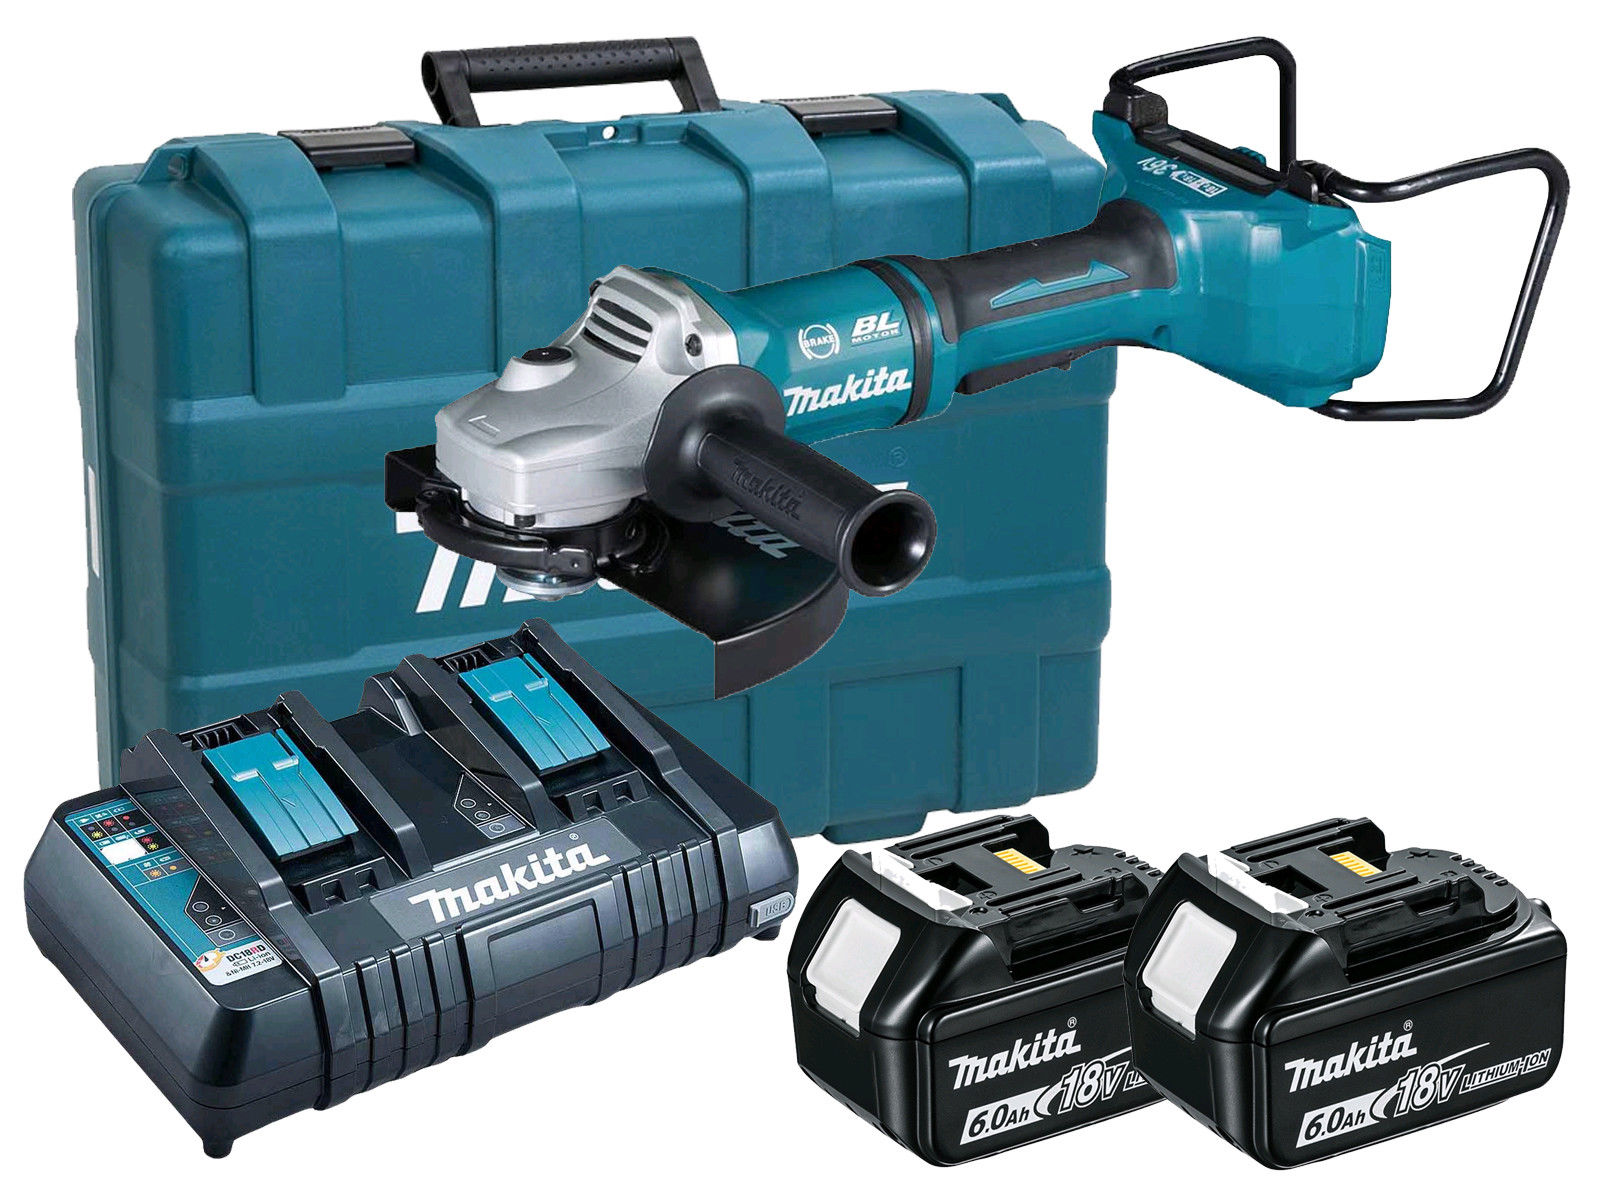 MAKITA 18V TWIN BRUSHLESS ANGLE GRINDER 230MM - DGA900 - 6.0AH PACK